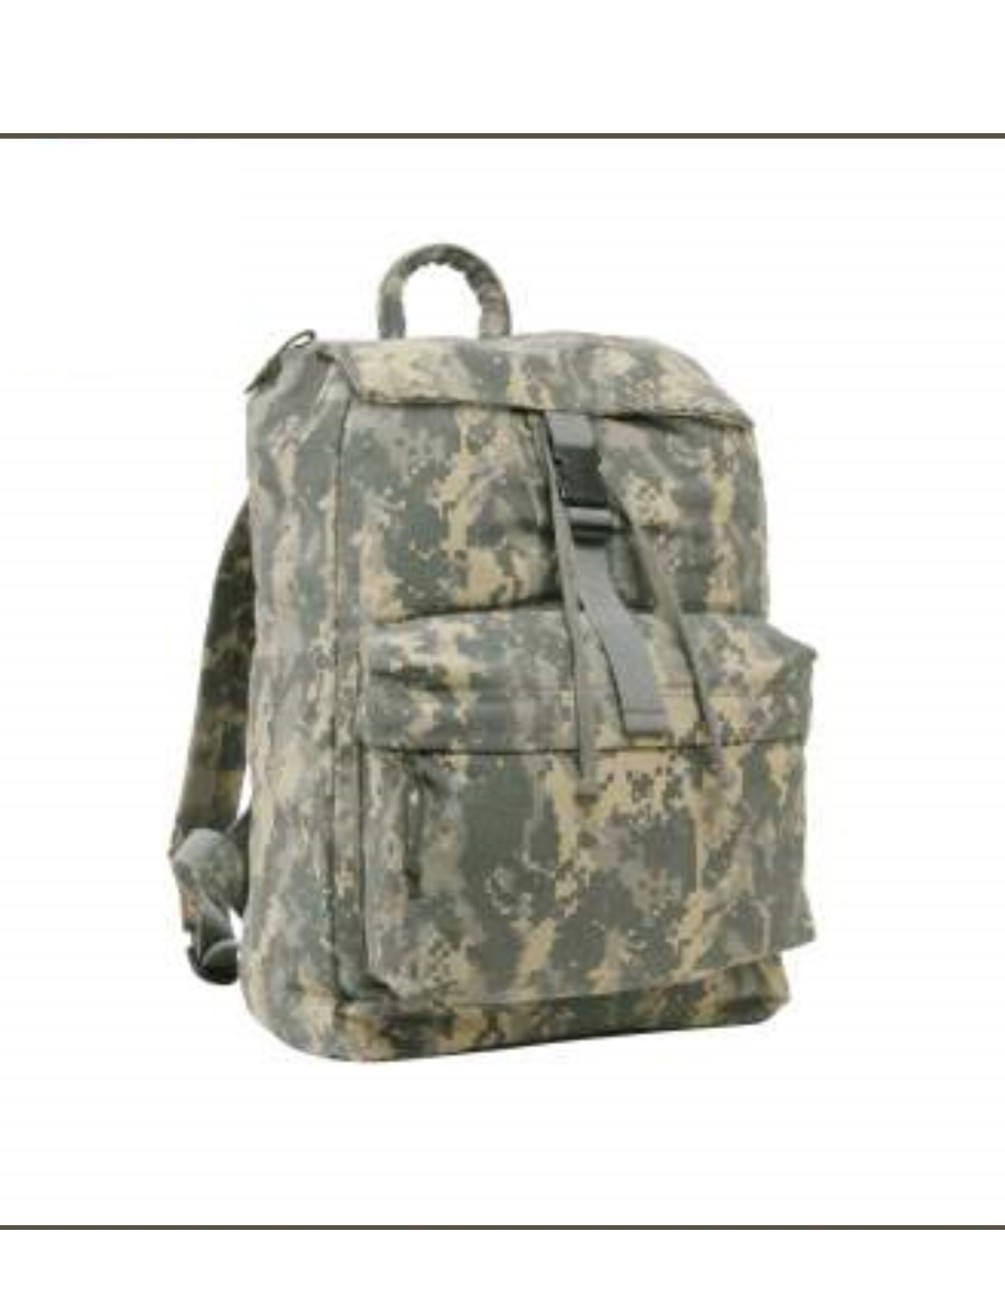 A.C.U. Digital Camo Canvas Daypack